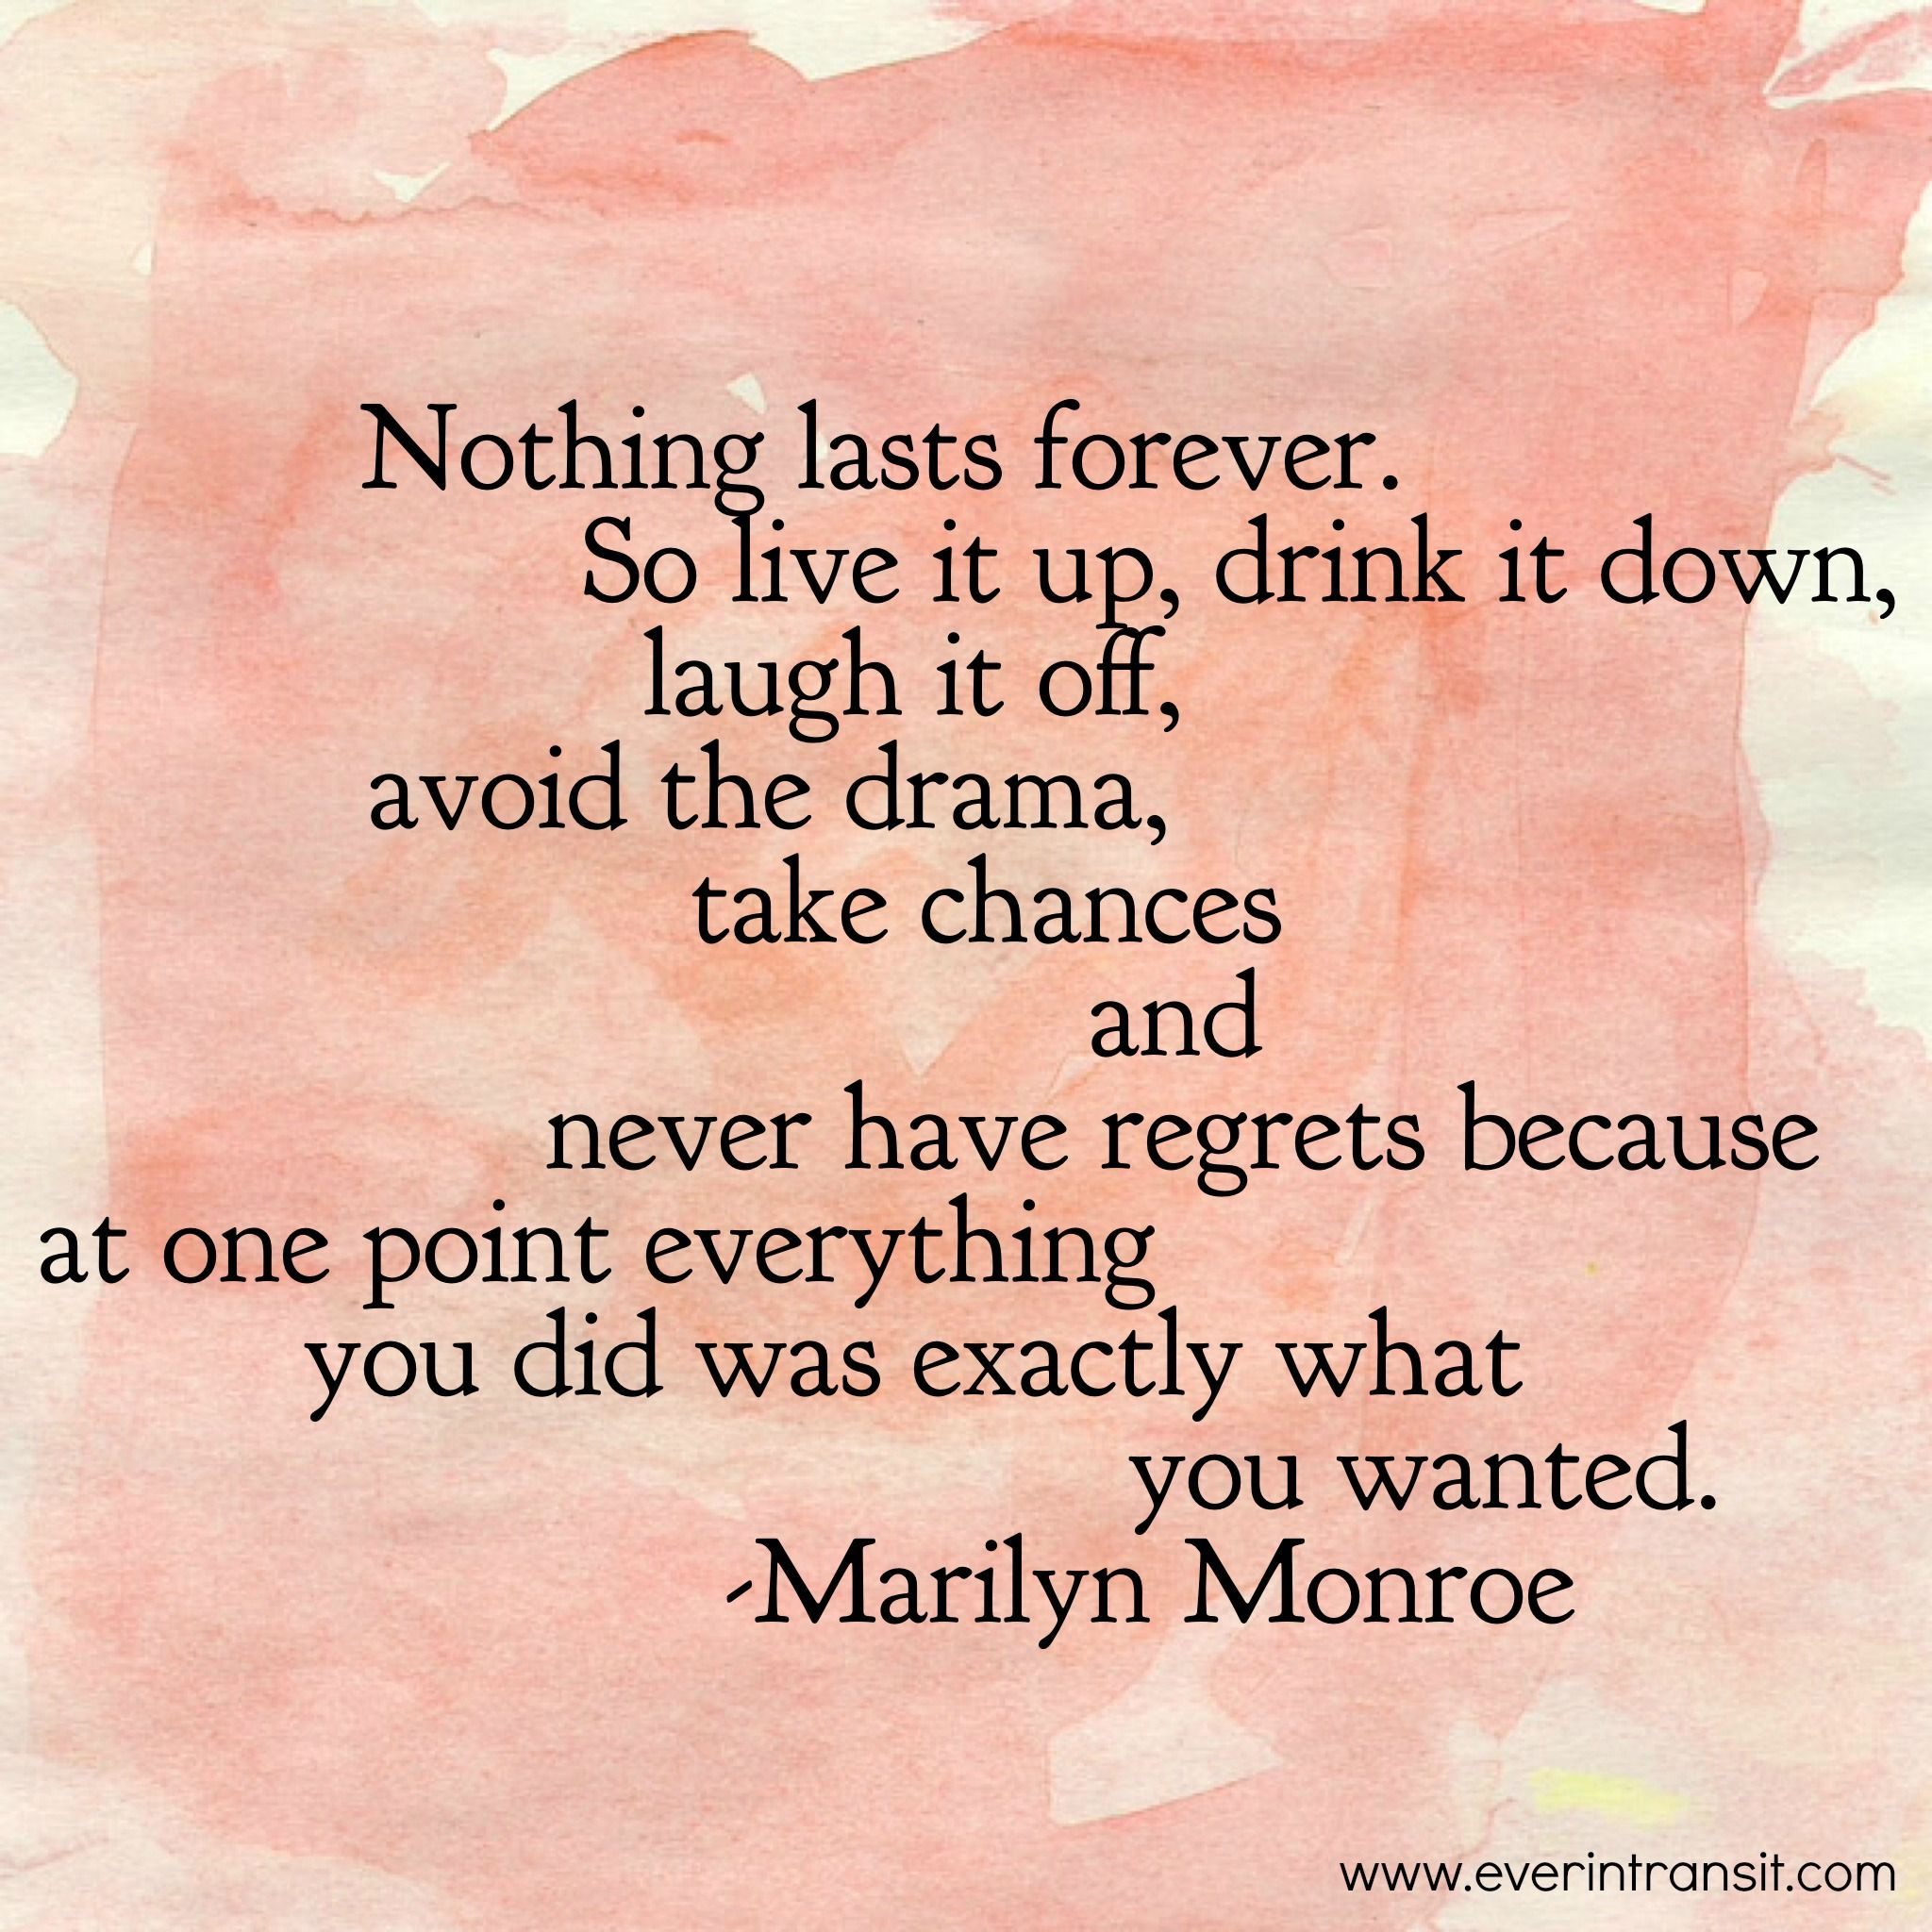 Nothing lasts forever live a life without regrets A quote by Marilyn Monroe